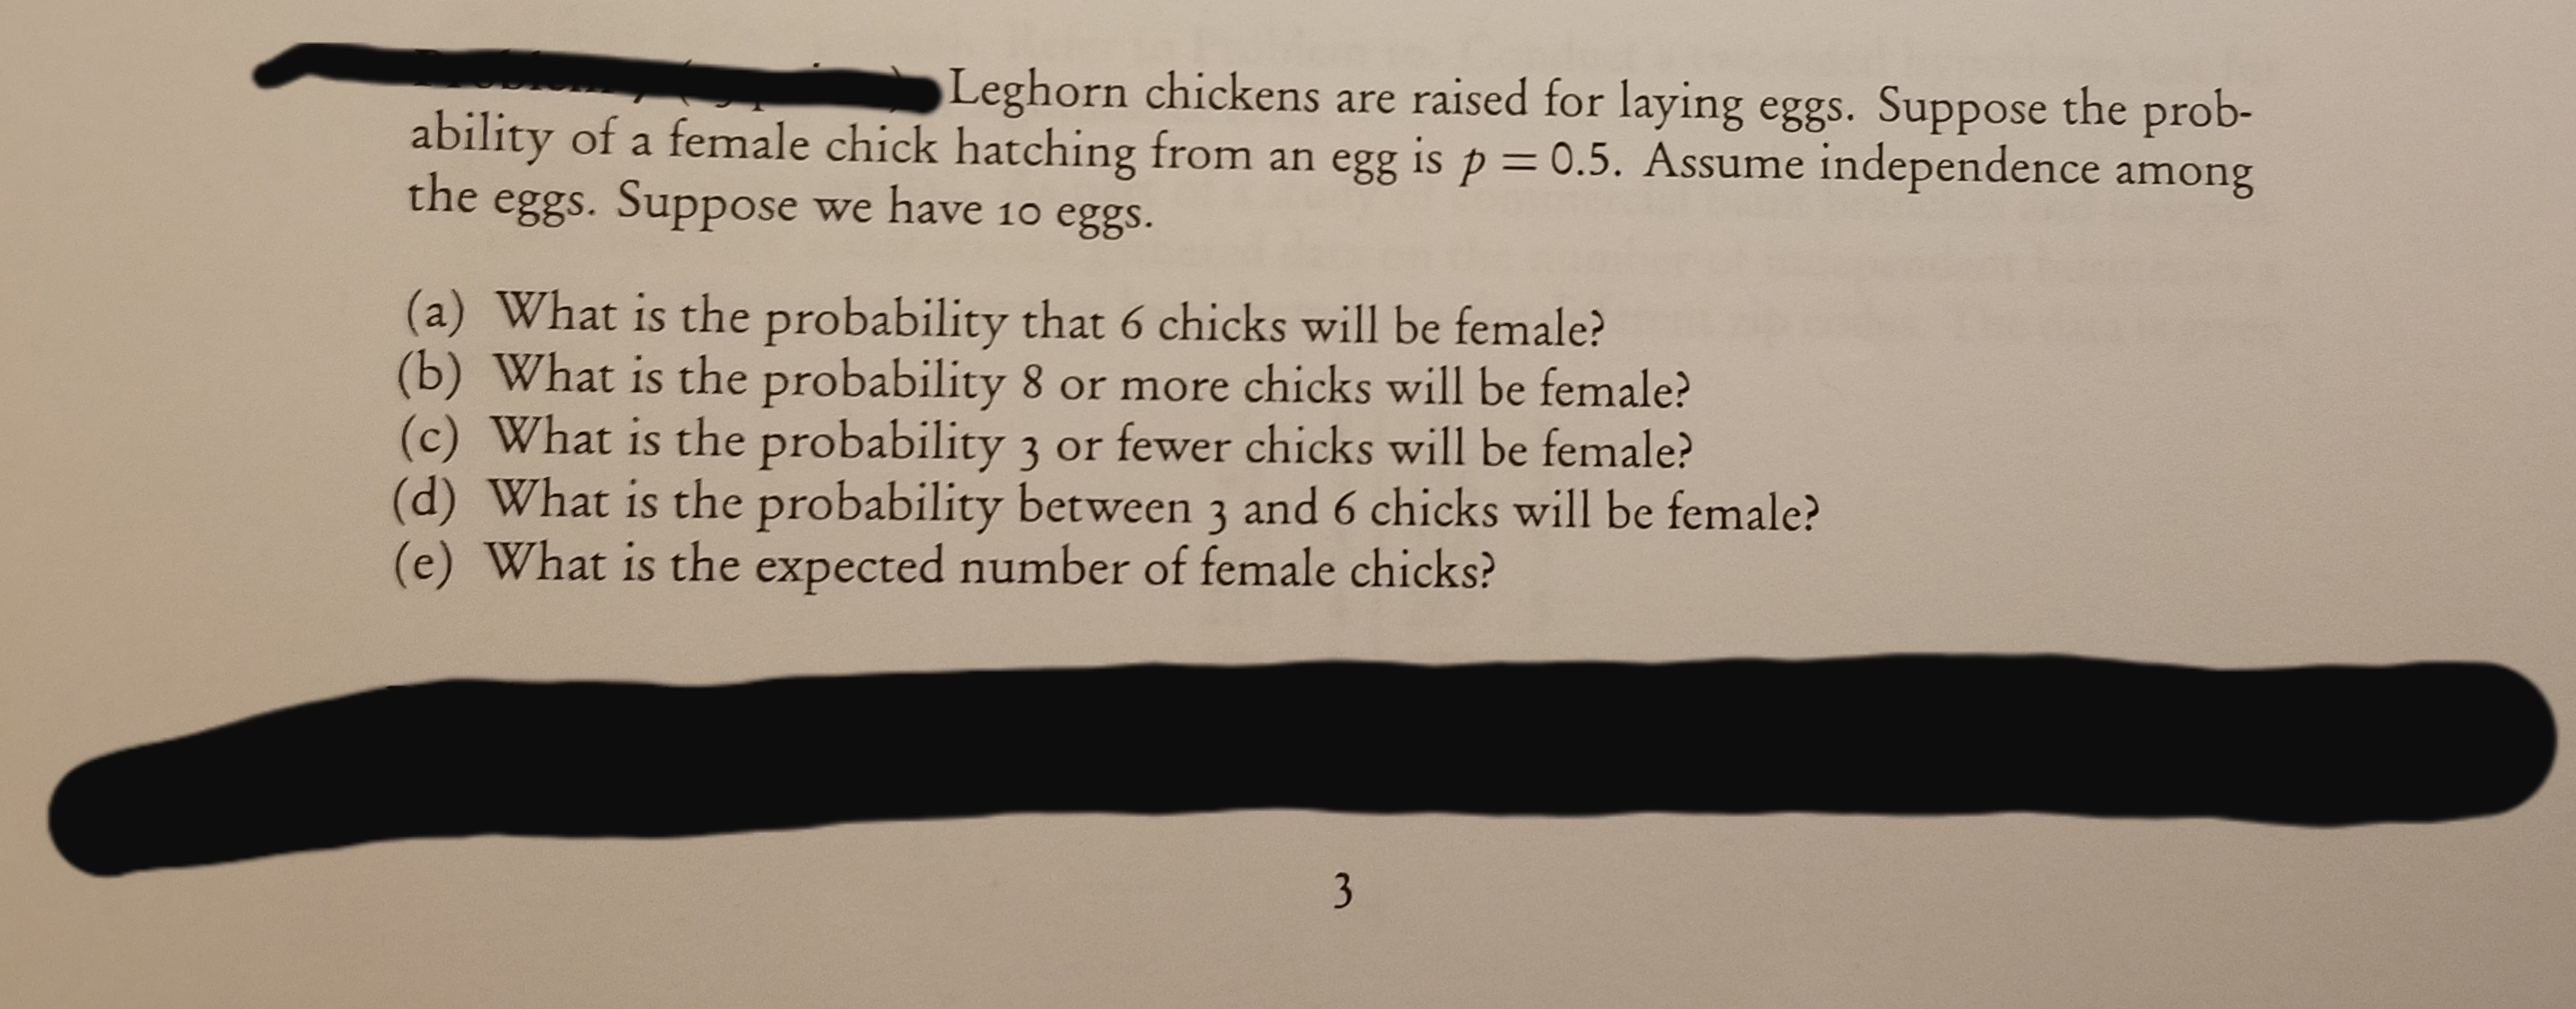 Leghorn chickens are raised for laying eggs. Suppose the prob- ability of a female chick hatching from an egg is p = 0.5. Assume independence among the eggs. Suppose we have 10 eggs. (a) What is the probability that 6 chicks will be female? (b) What is the probability 8 or more chicks will be female? (c) What is the probability 3 or fewer chicks will be female? (d) What is the probability between 3 and 6 chicks will be female? (e) What is the expected number of female chicks? 3